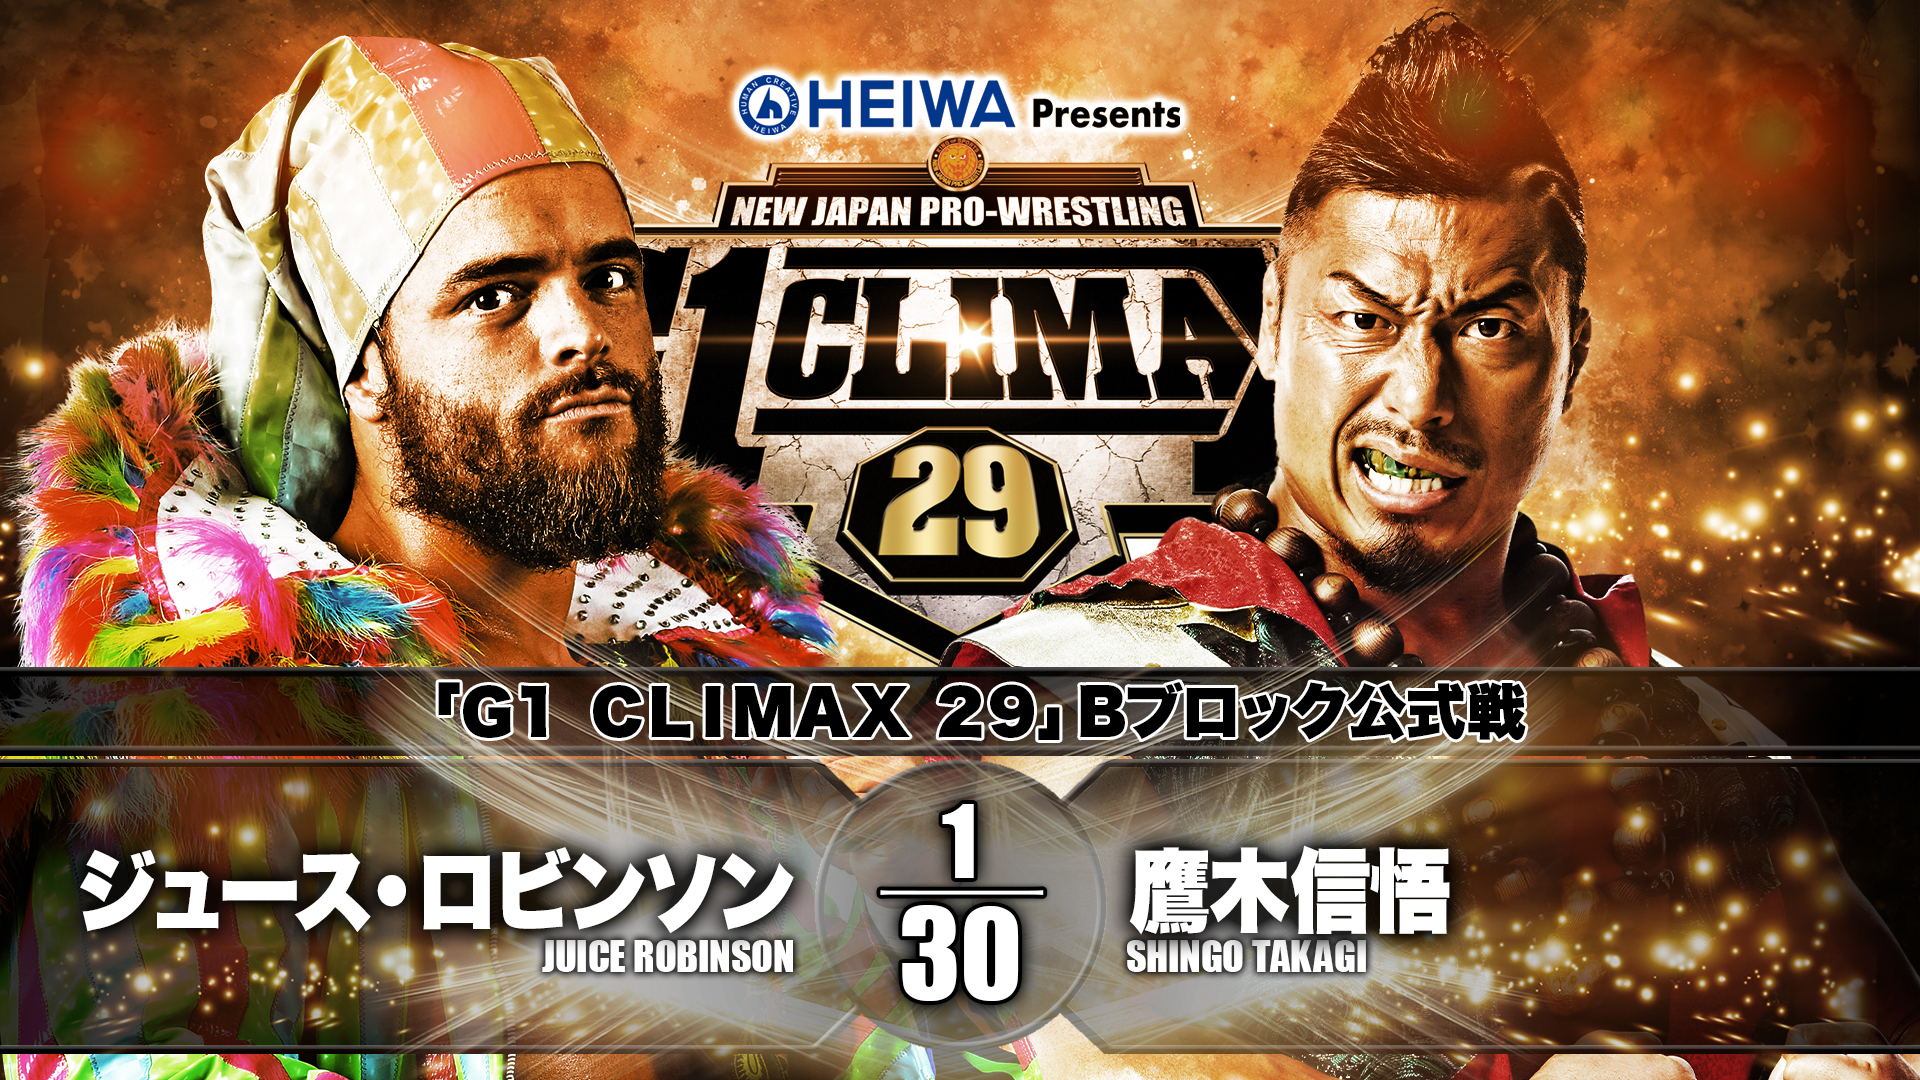 G1 Climax 29 night 2 at a glance 【G129】 | NEW JAPAN PRO-WRESTLING